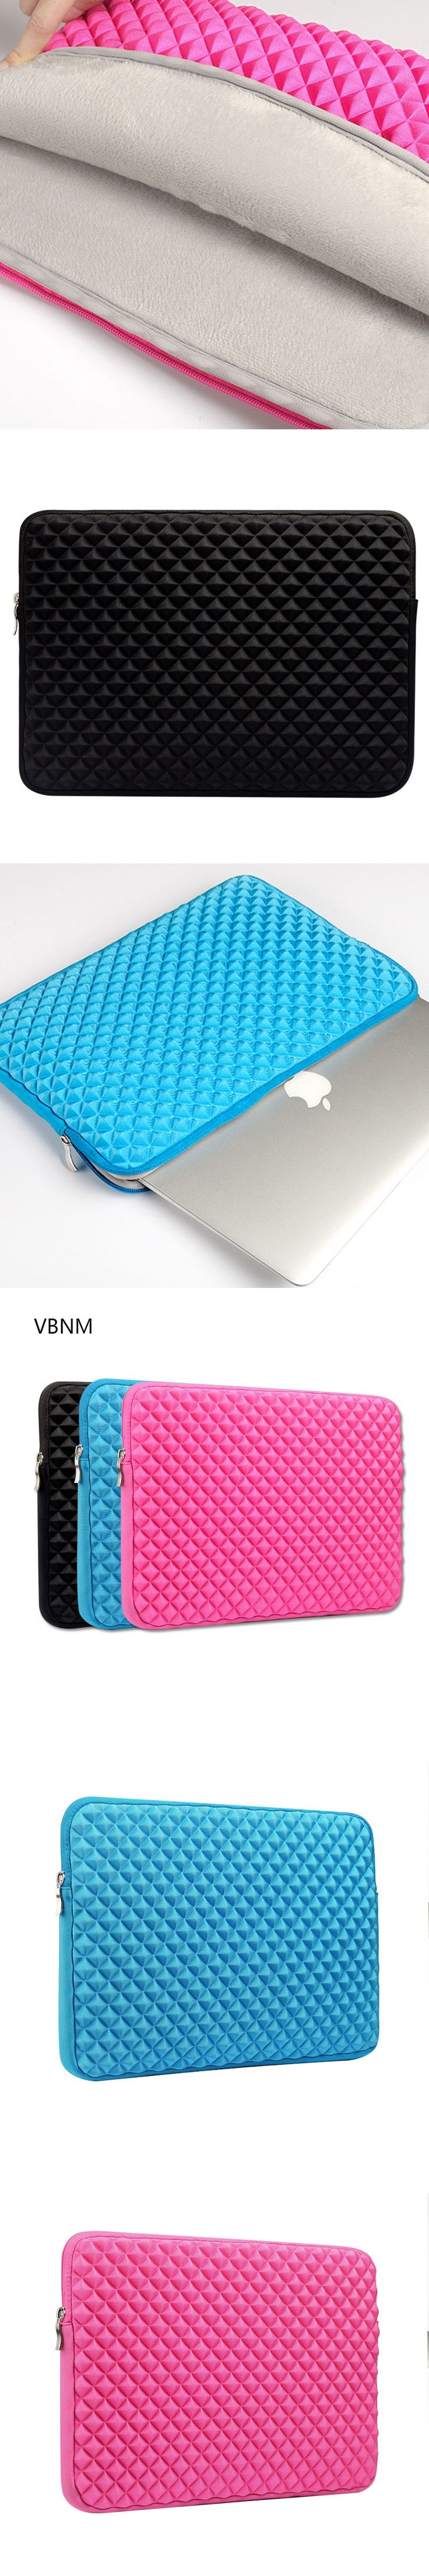 VBNM 11 12 13 15 Inch Waterproof Notebook Bag Laptop Sleeve for Macbook Air Pro Retina Protective Bag Case for Mac Laptop 13.3